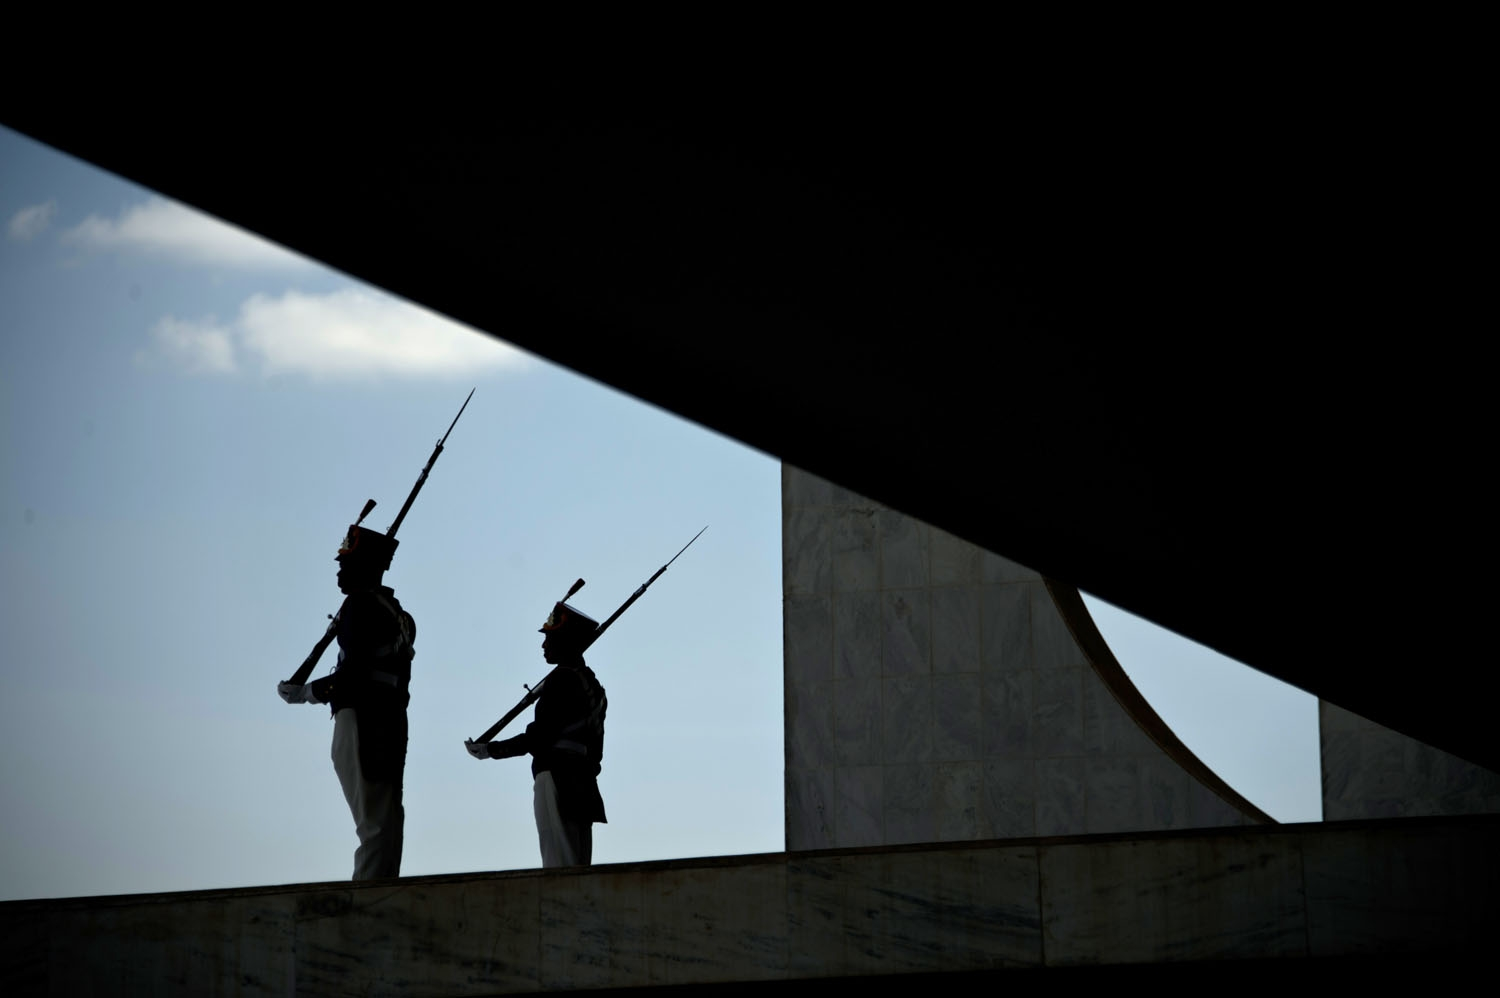 Presidential protocol guards are silhouted at the Planalto palace in Brasilia on May 11, 2016.